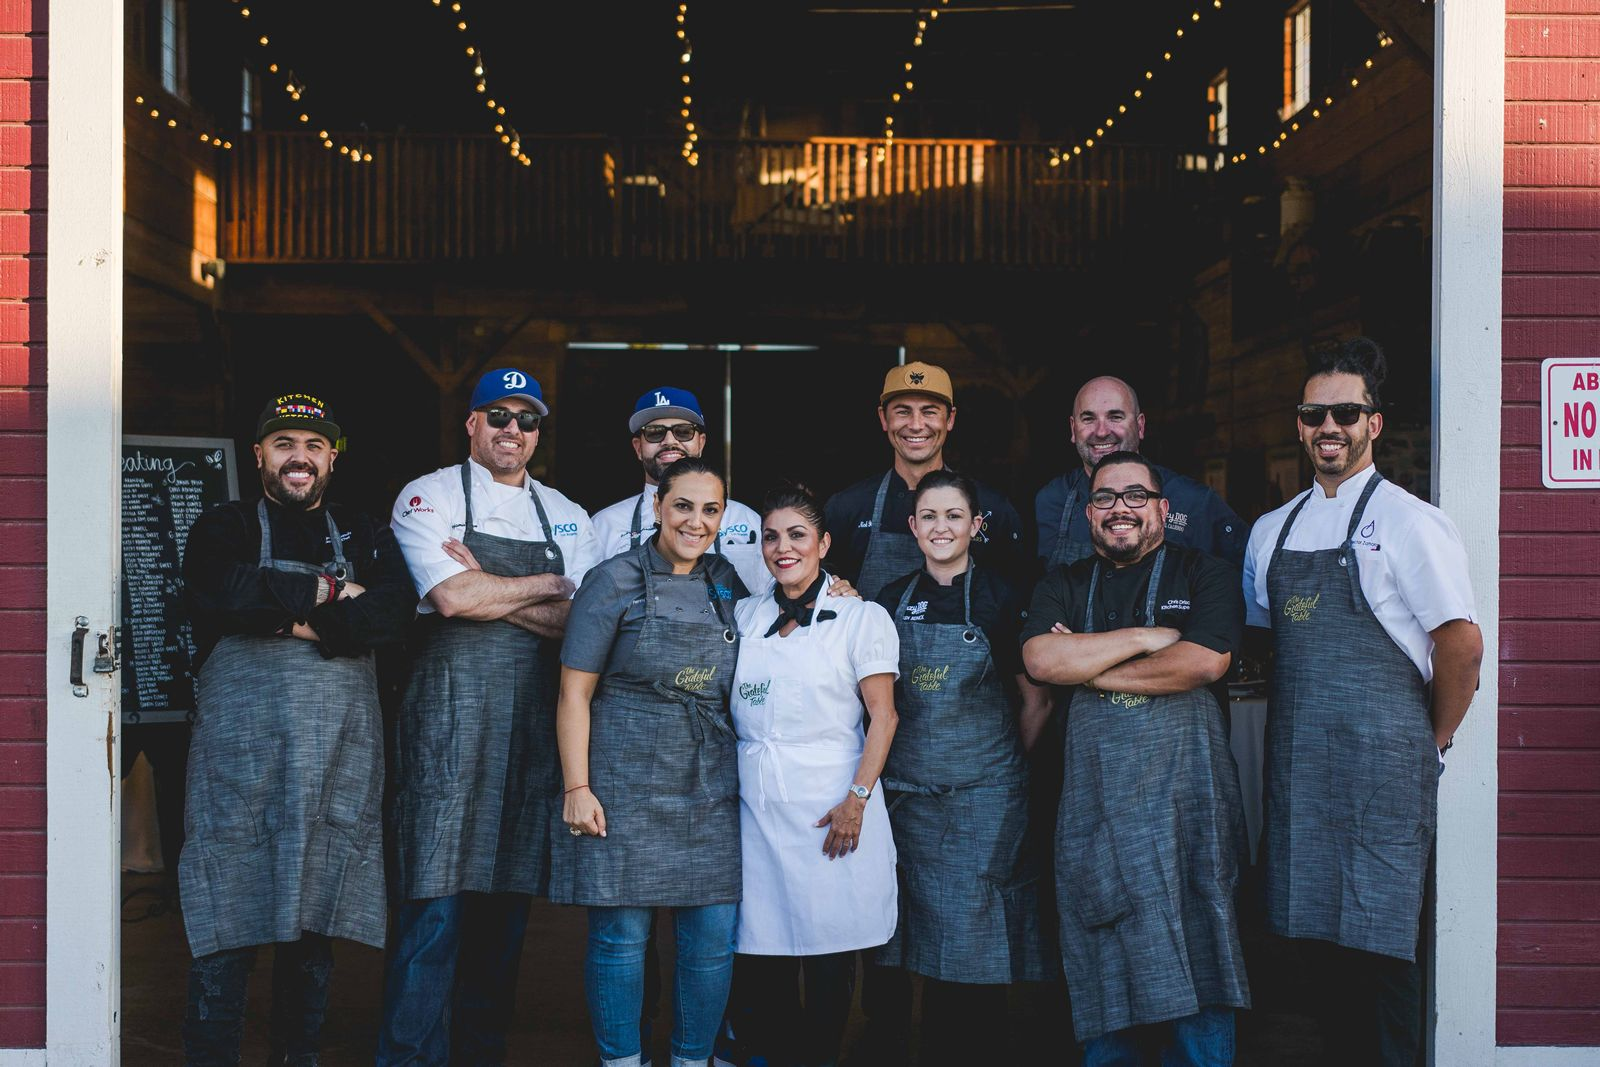 CRAF Grateful Table Event Raises $90,000 for Restaurants Care Program